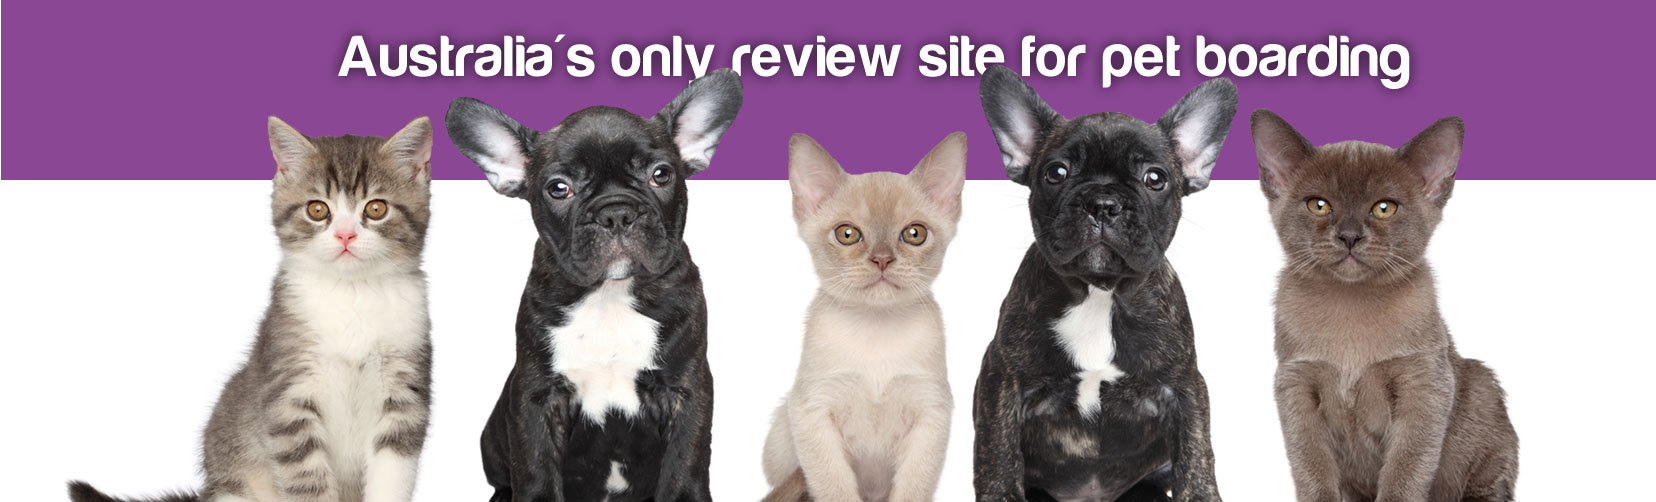 PetStayAdvisor Australia's only review site for pet boarding